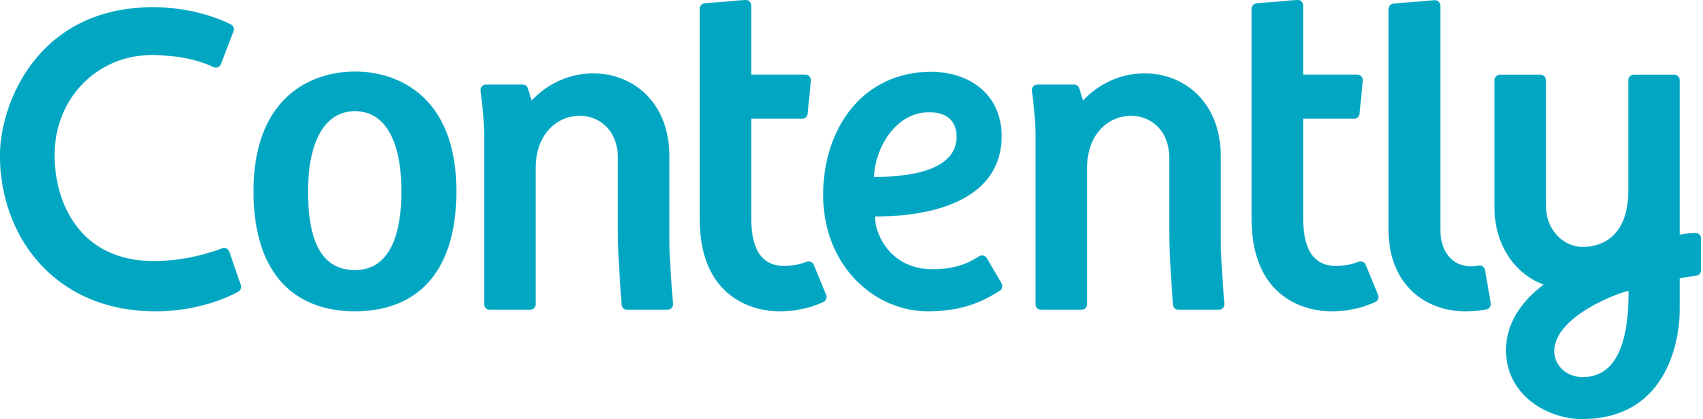 contently-logo.png